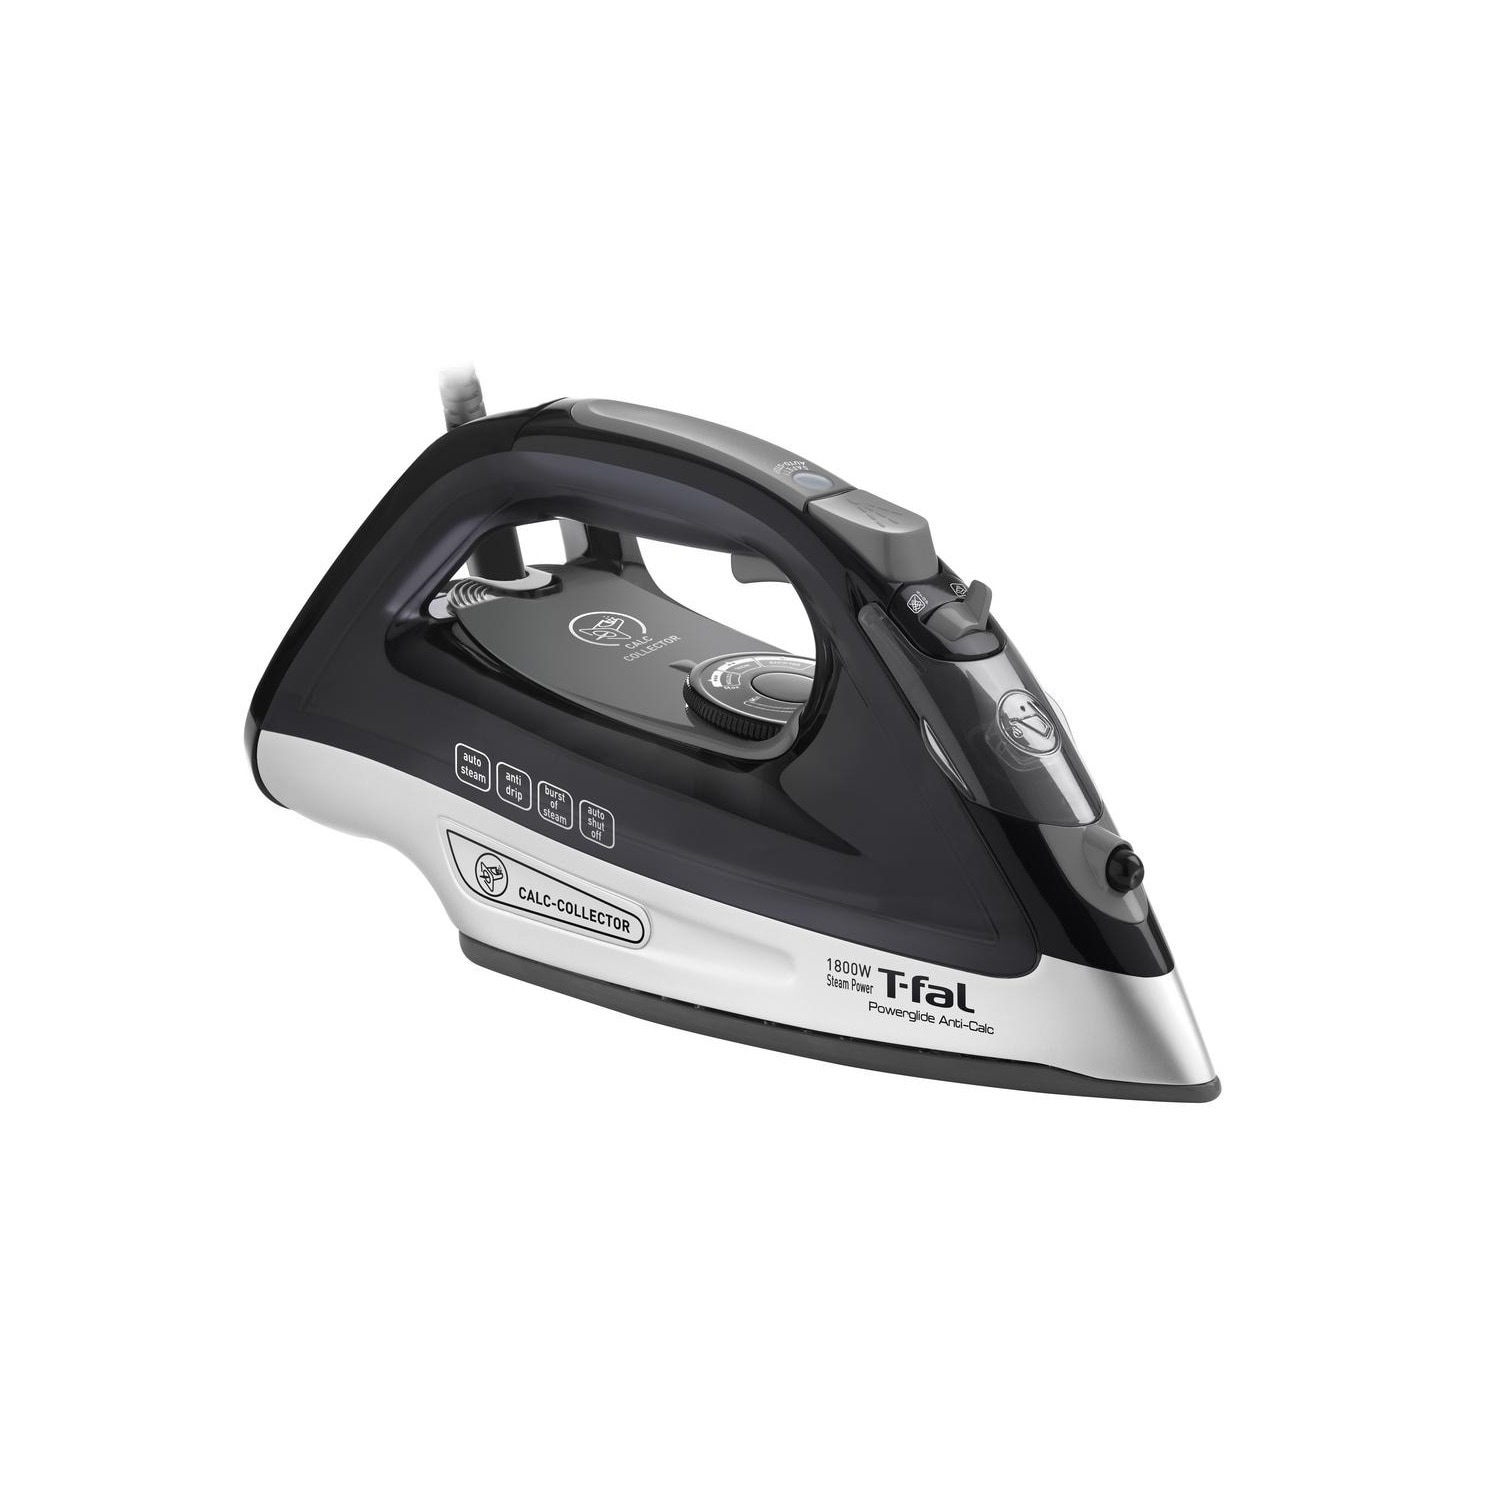 T-FAL PowerGlide Steam Iron, Black